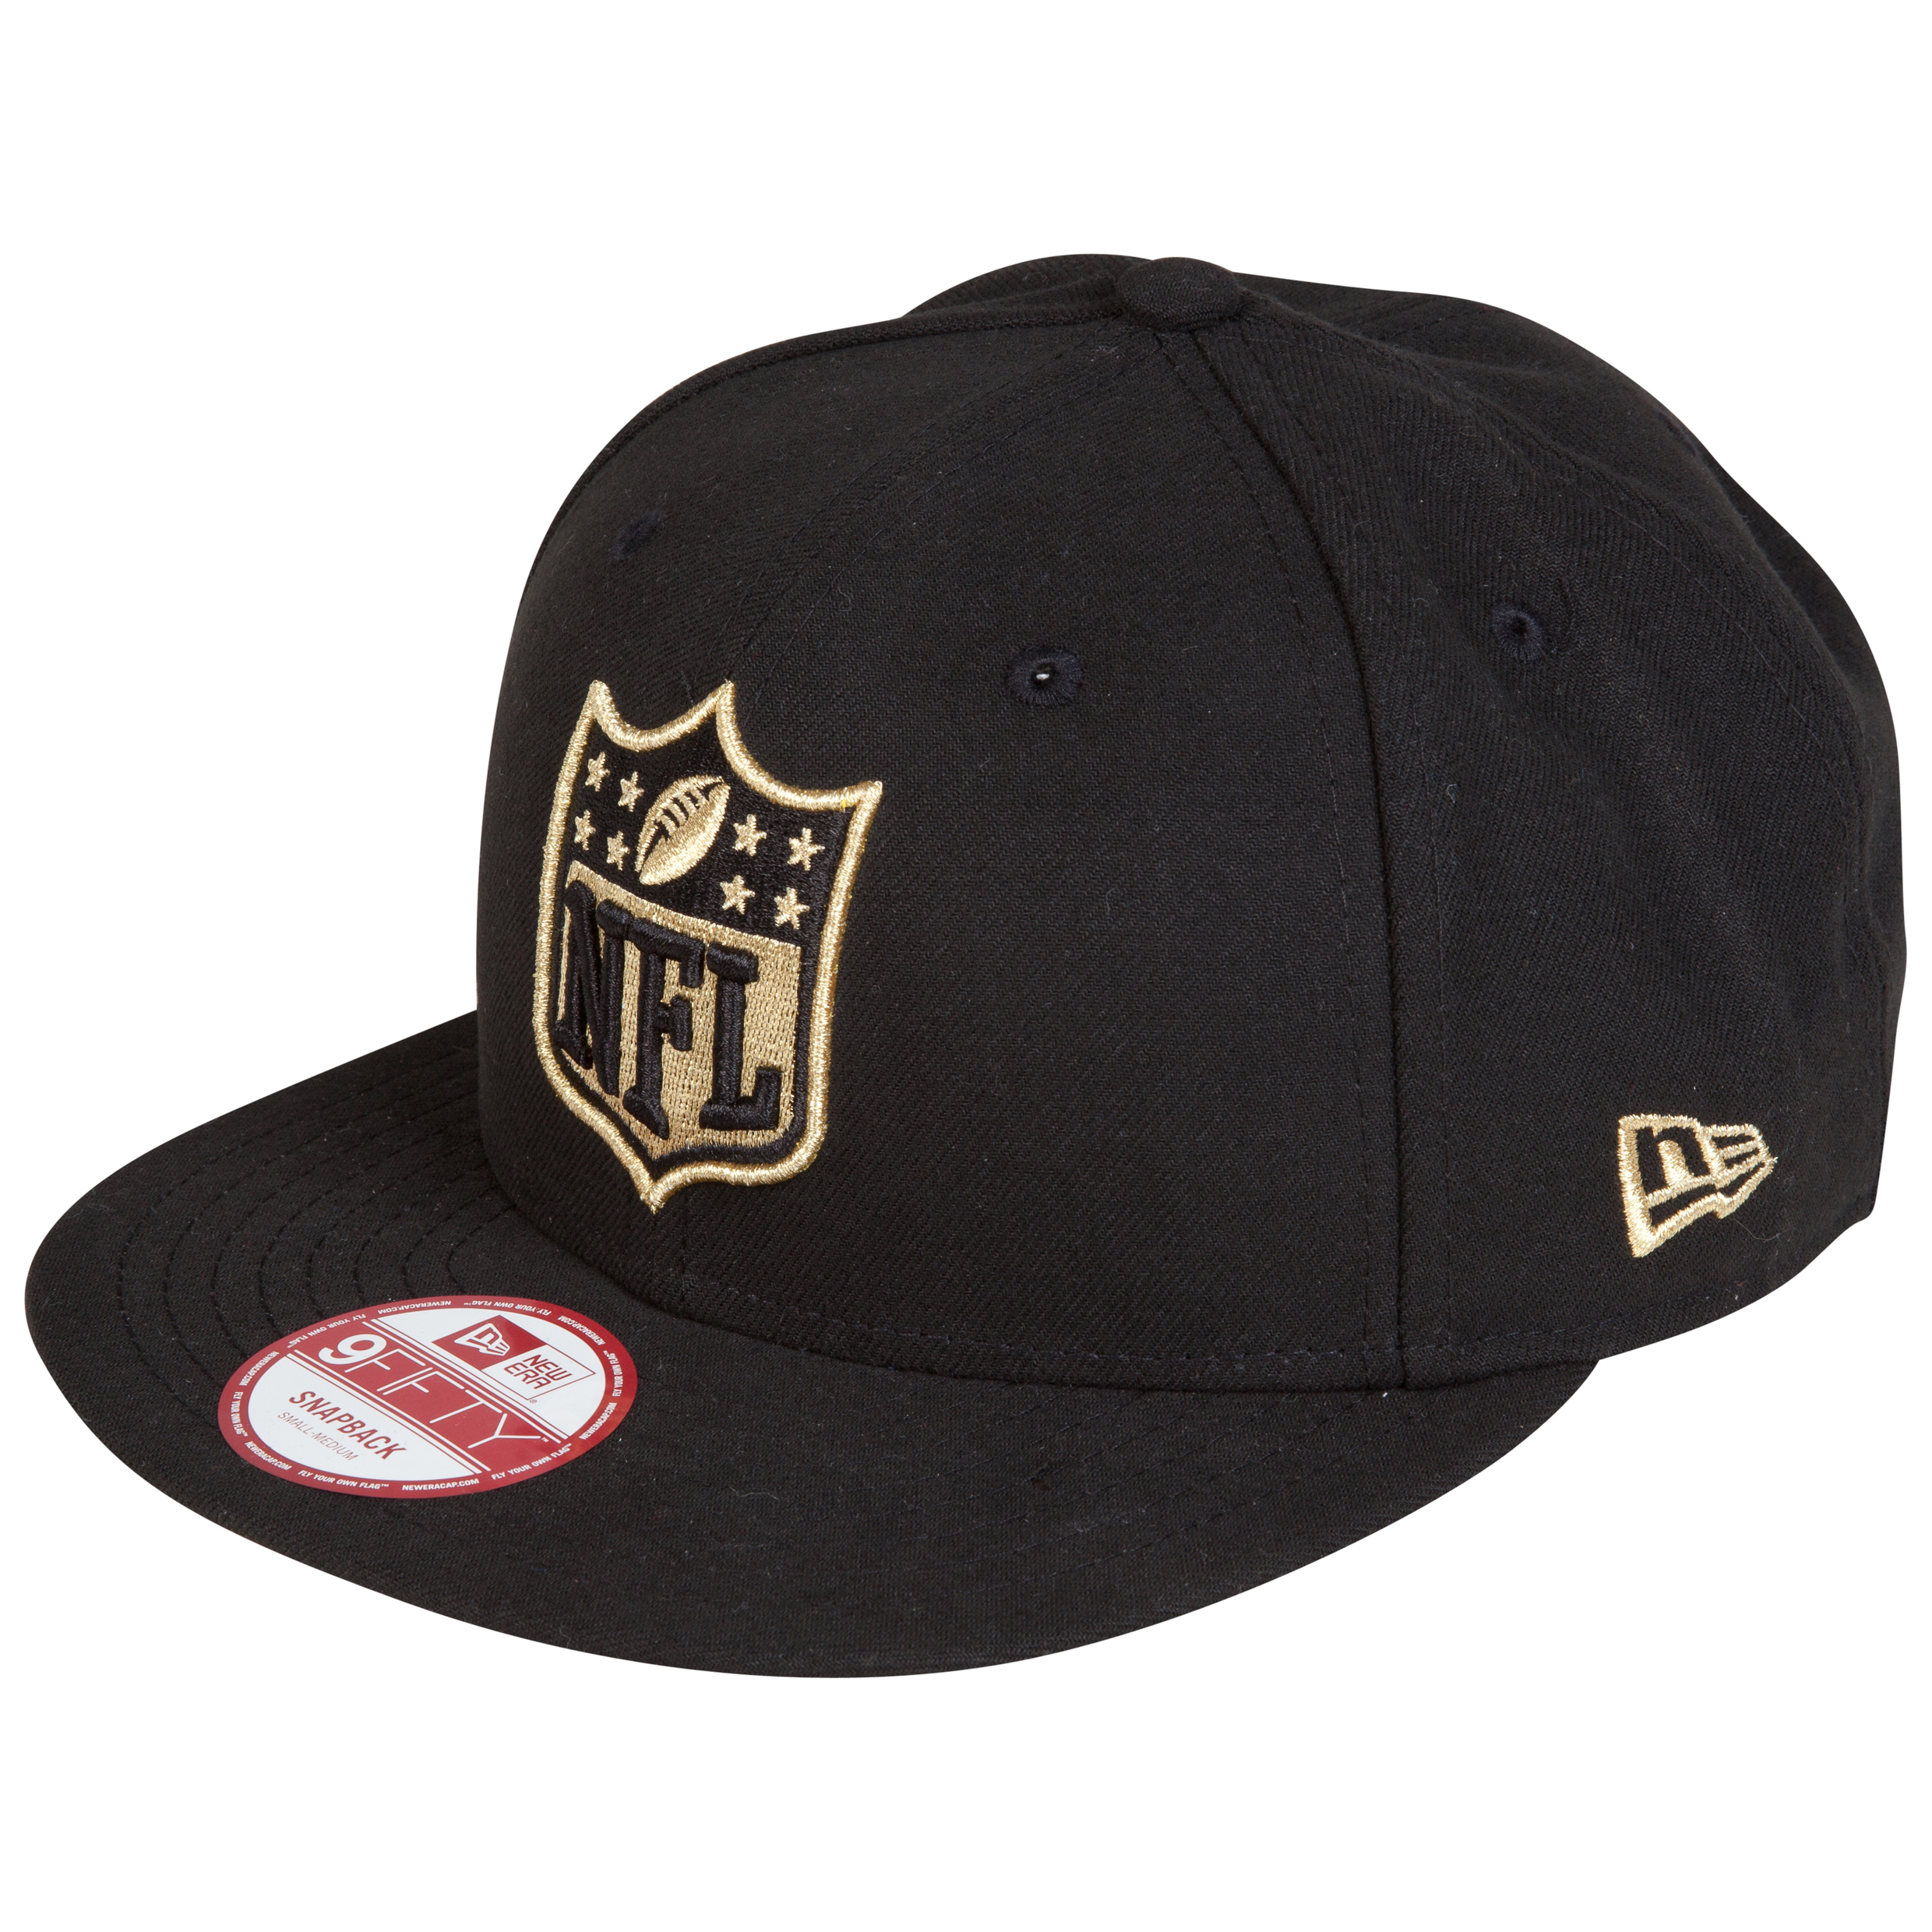 NFL New Era 9FIFTY Shield Snapback Cap